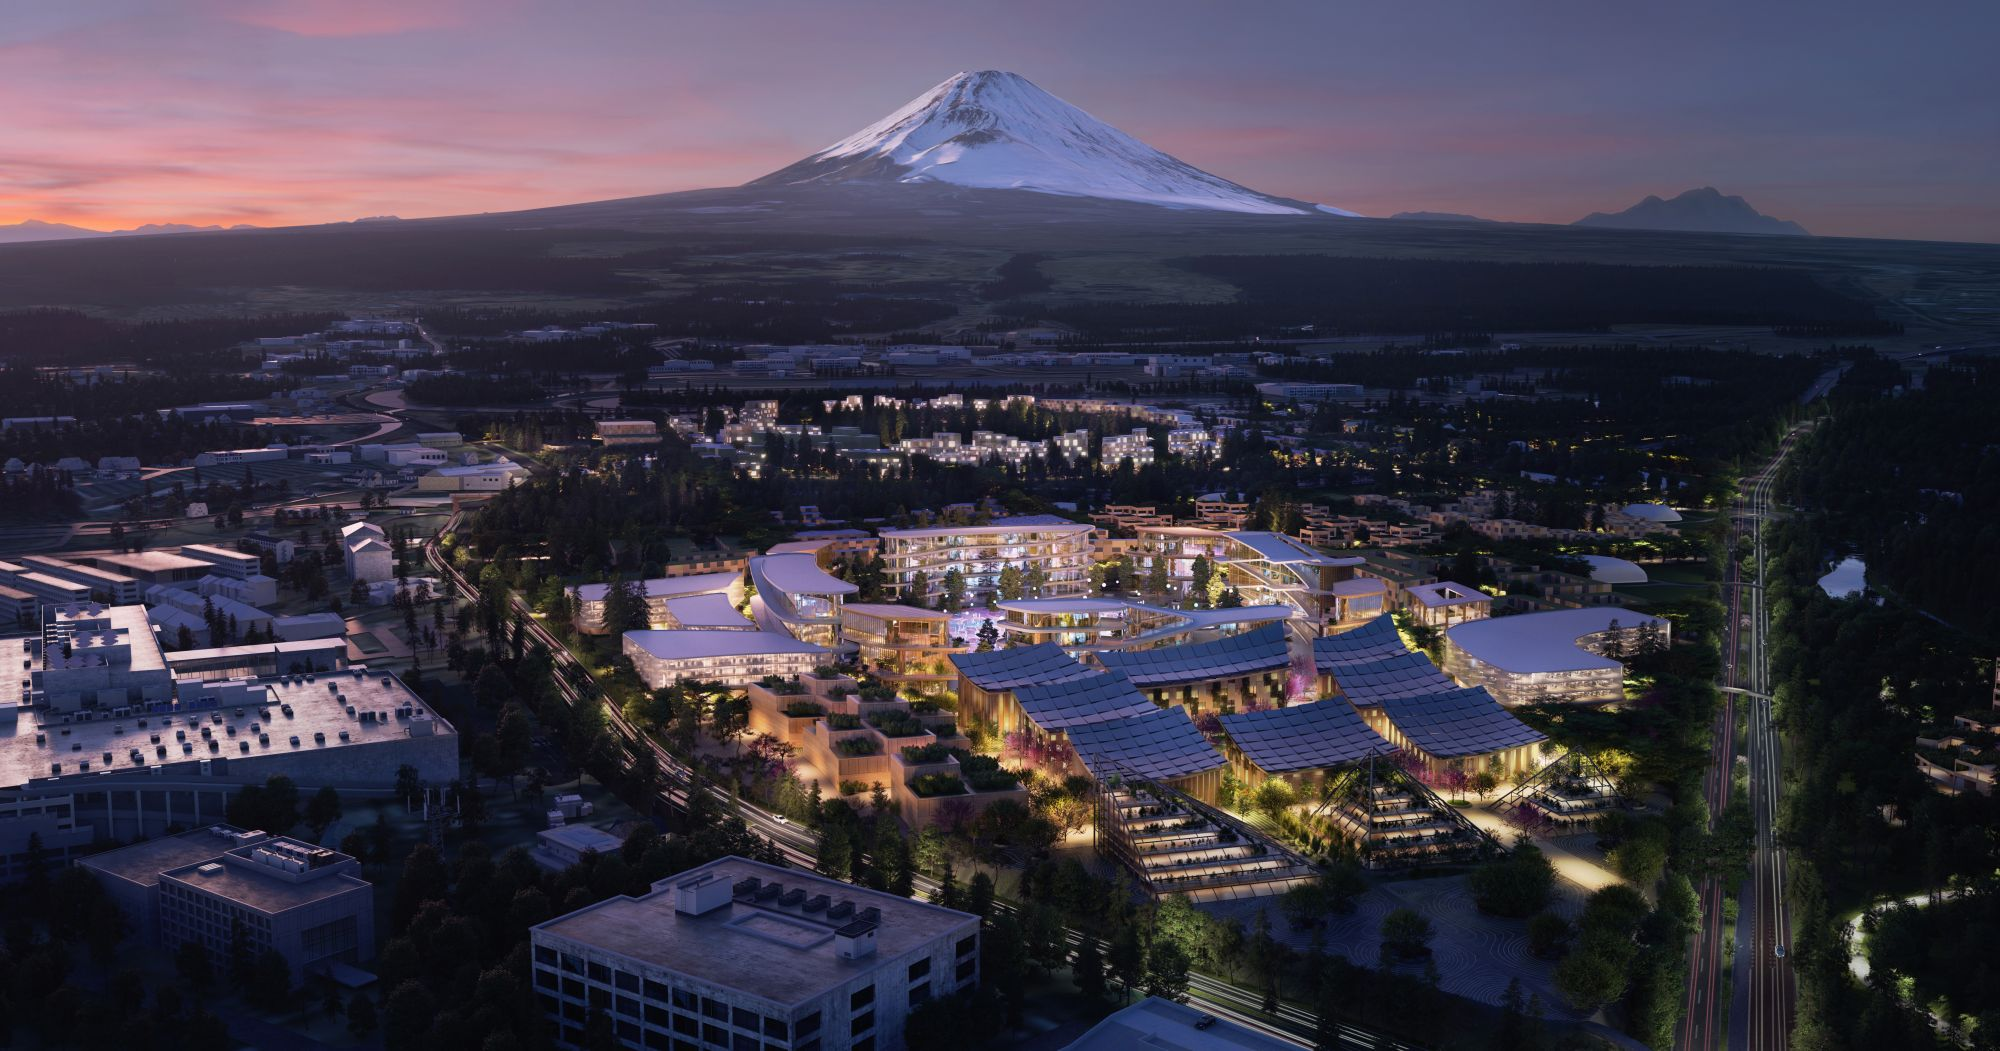 5 Highlights From CES 2020: Toyota's Smart City At Mount Fuji's Base, Samsung Robot-Ball And More